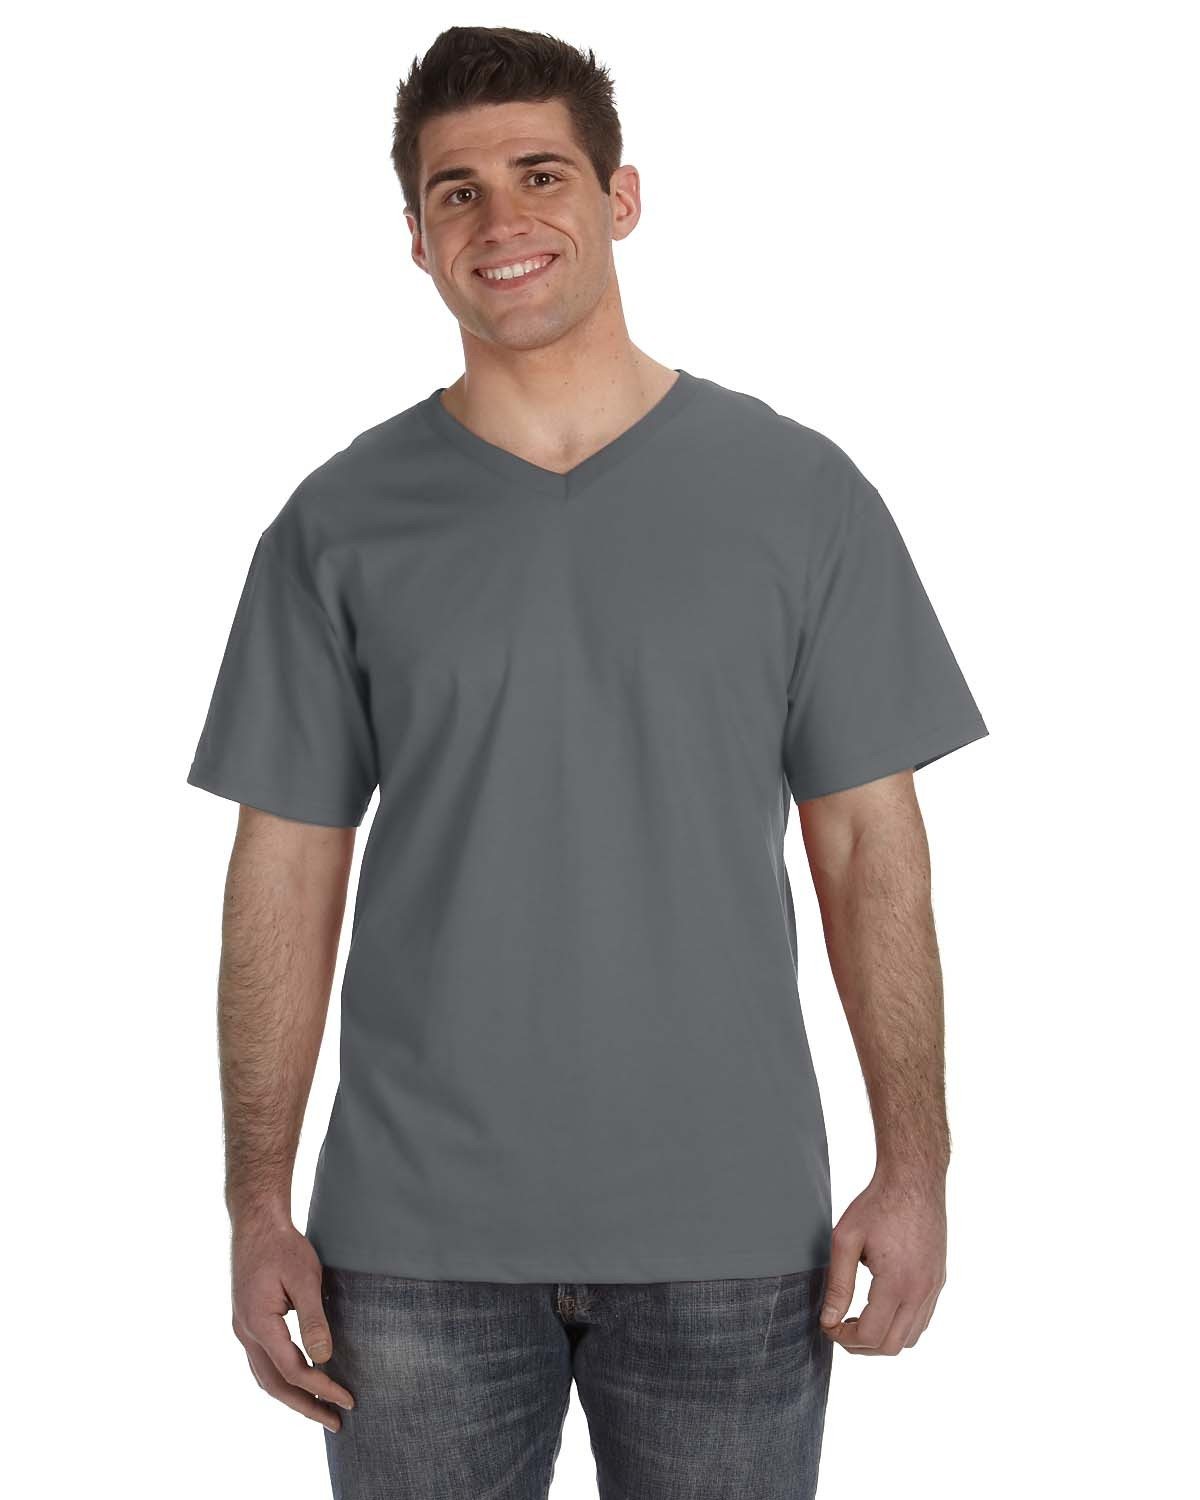 39VR Fruit of the Loom CHARCOAL GREY